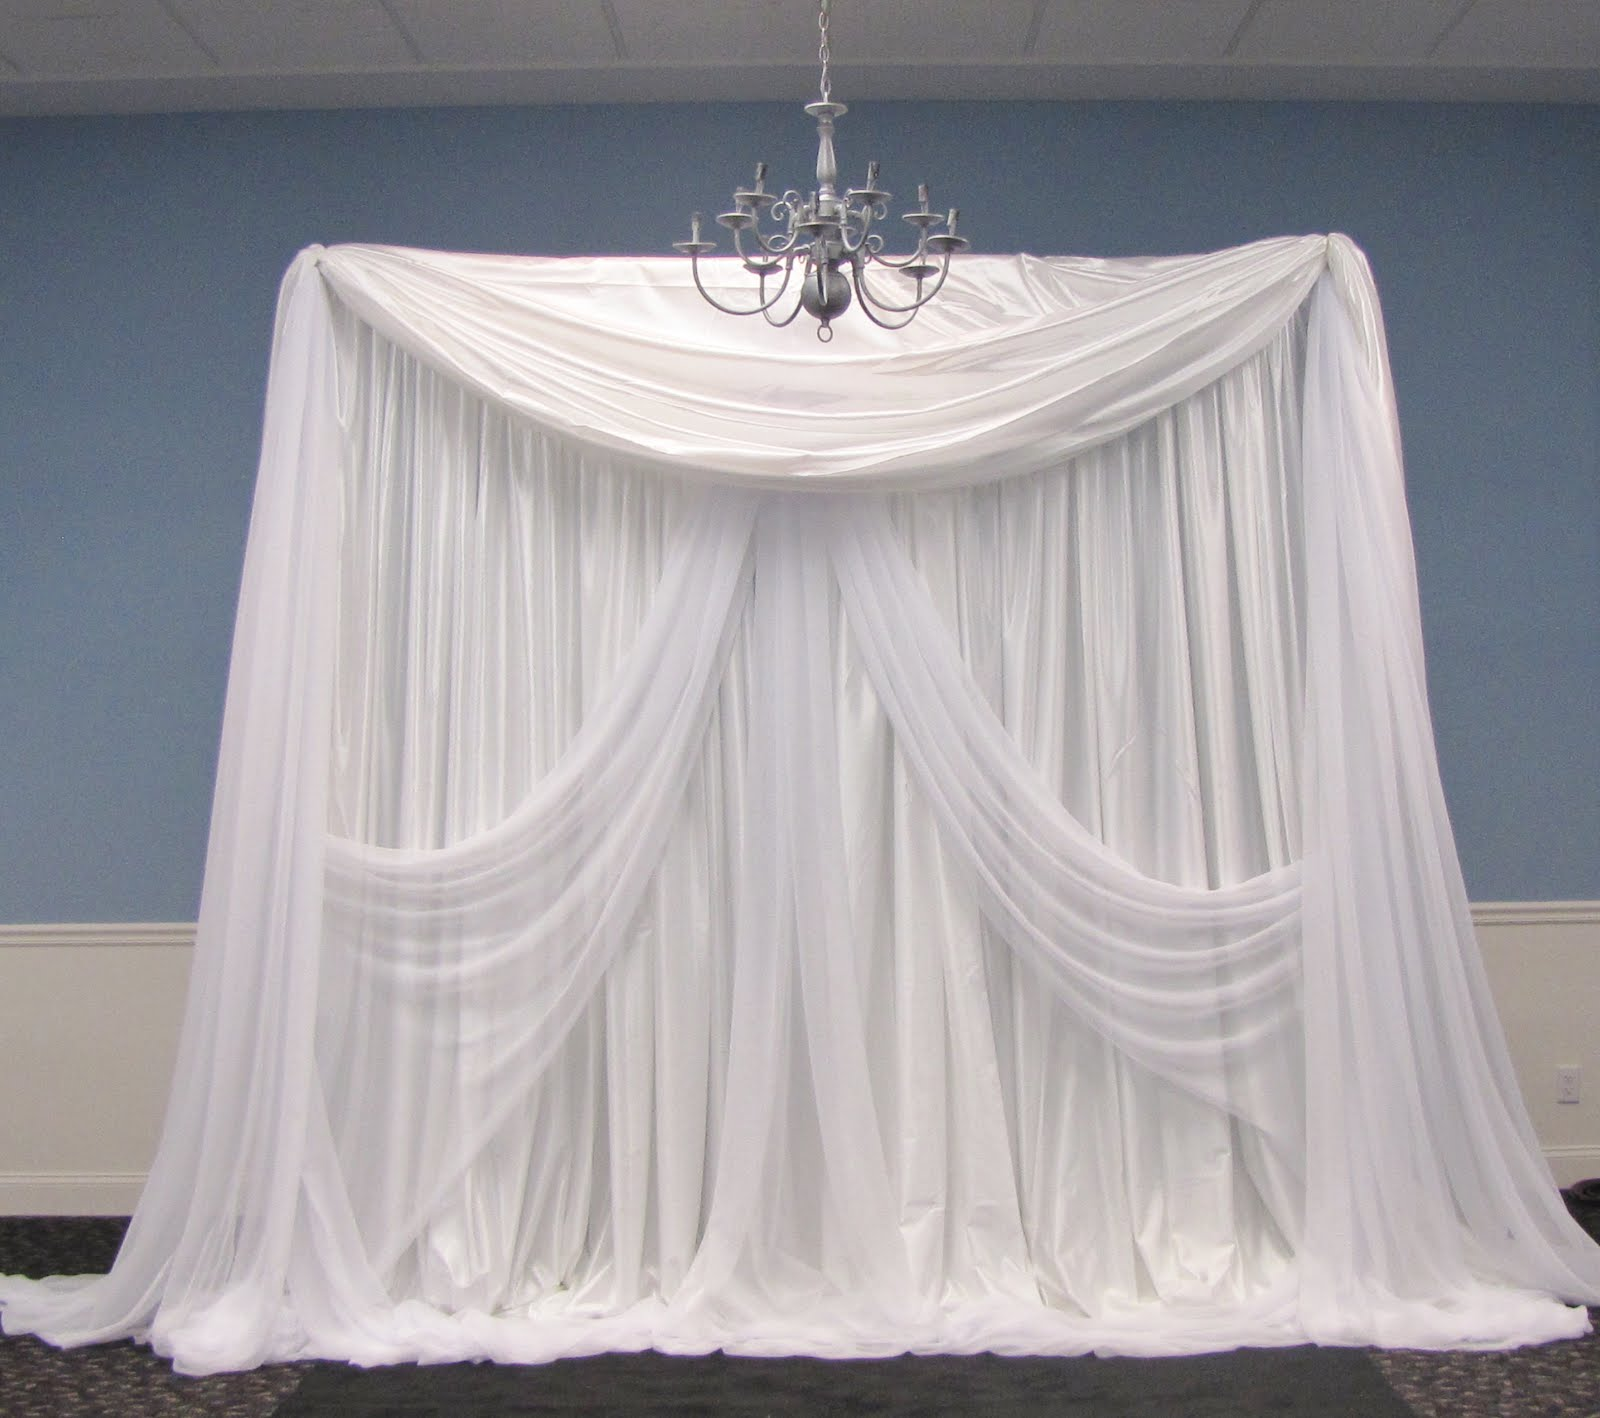 Elegant Wedding Backdrops: Party People Event Decorating Company: Elegant Wedding